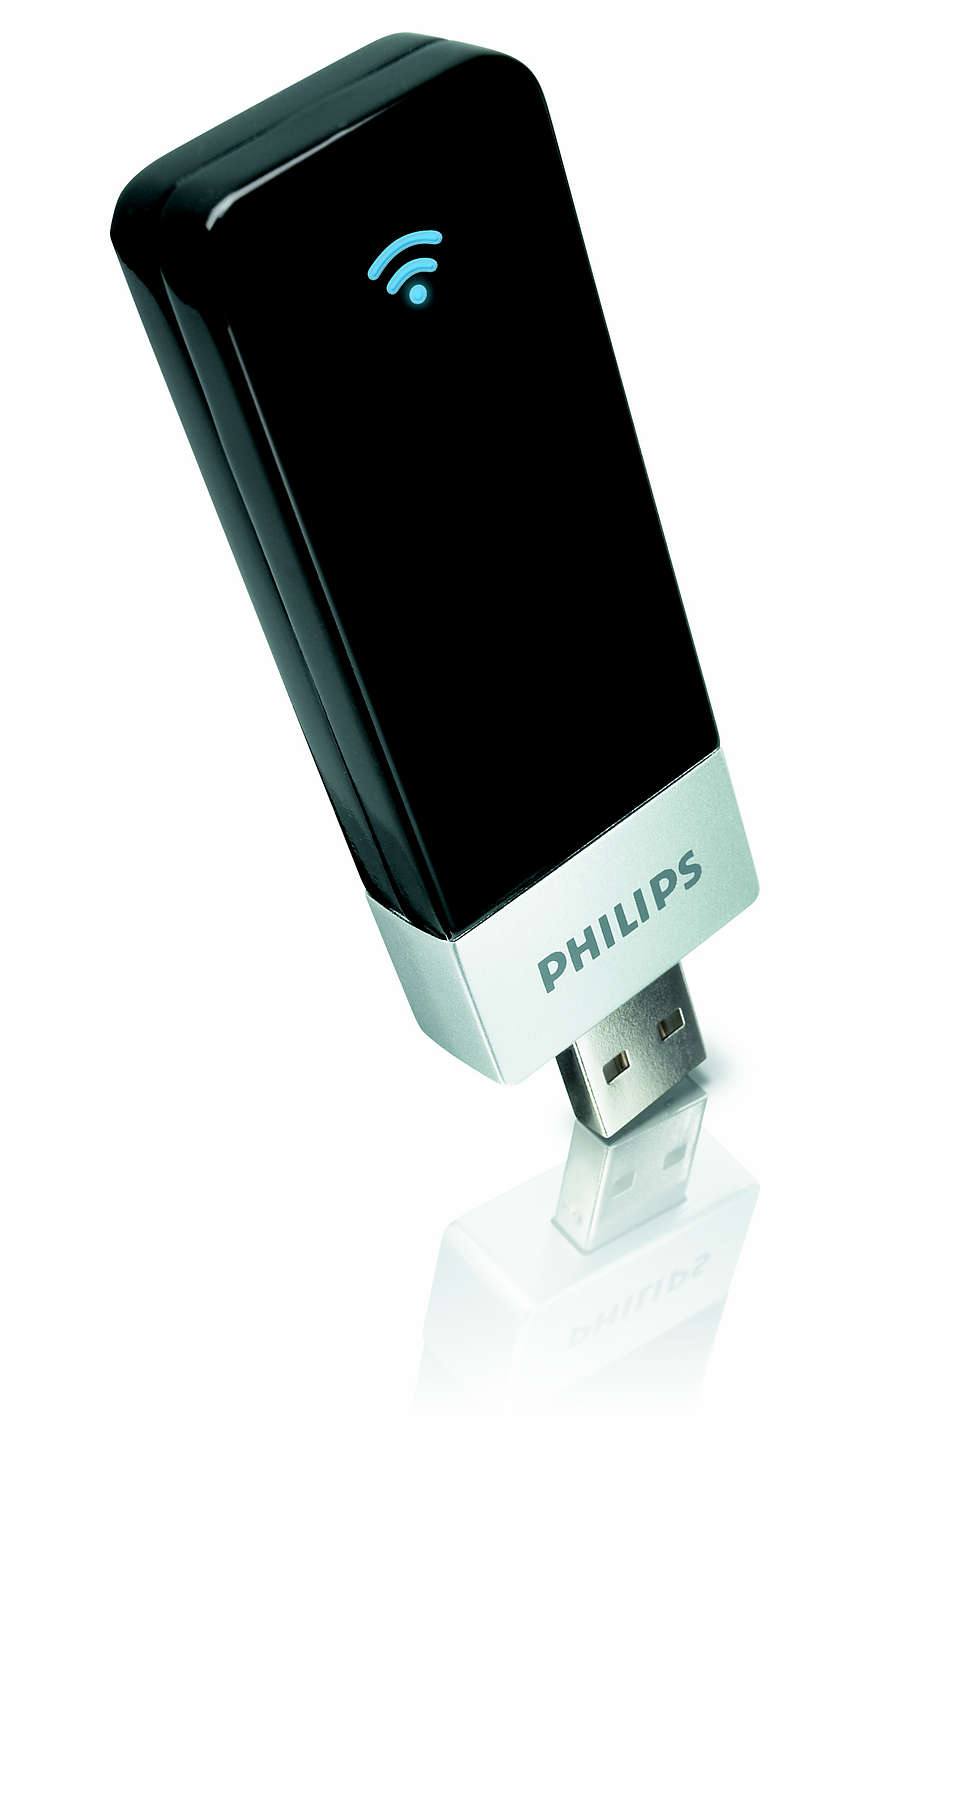 Adaptador USB inalámbrico